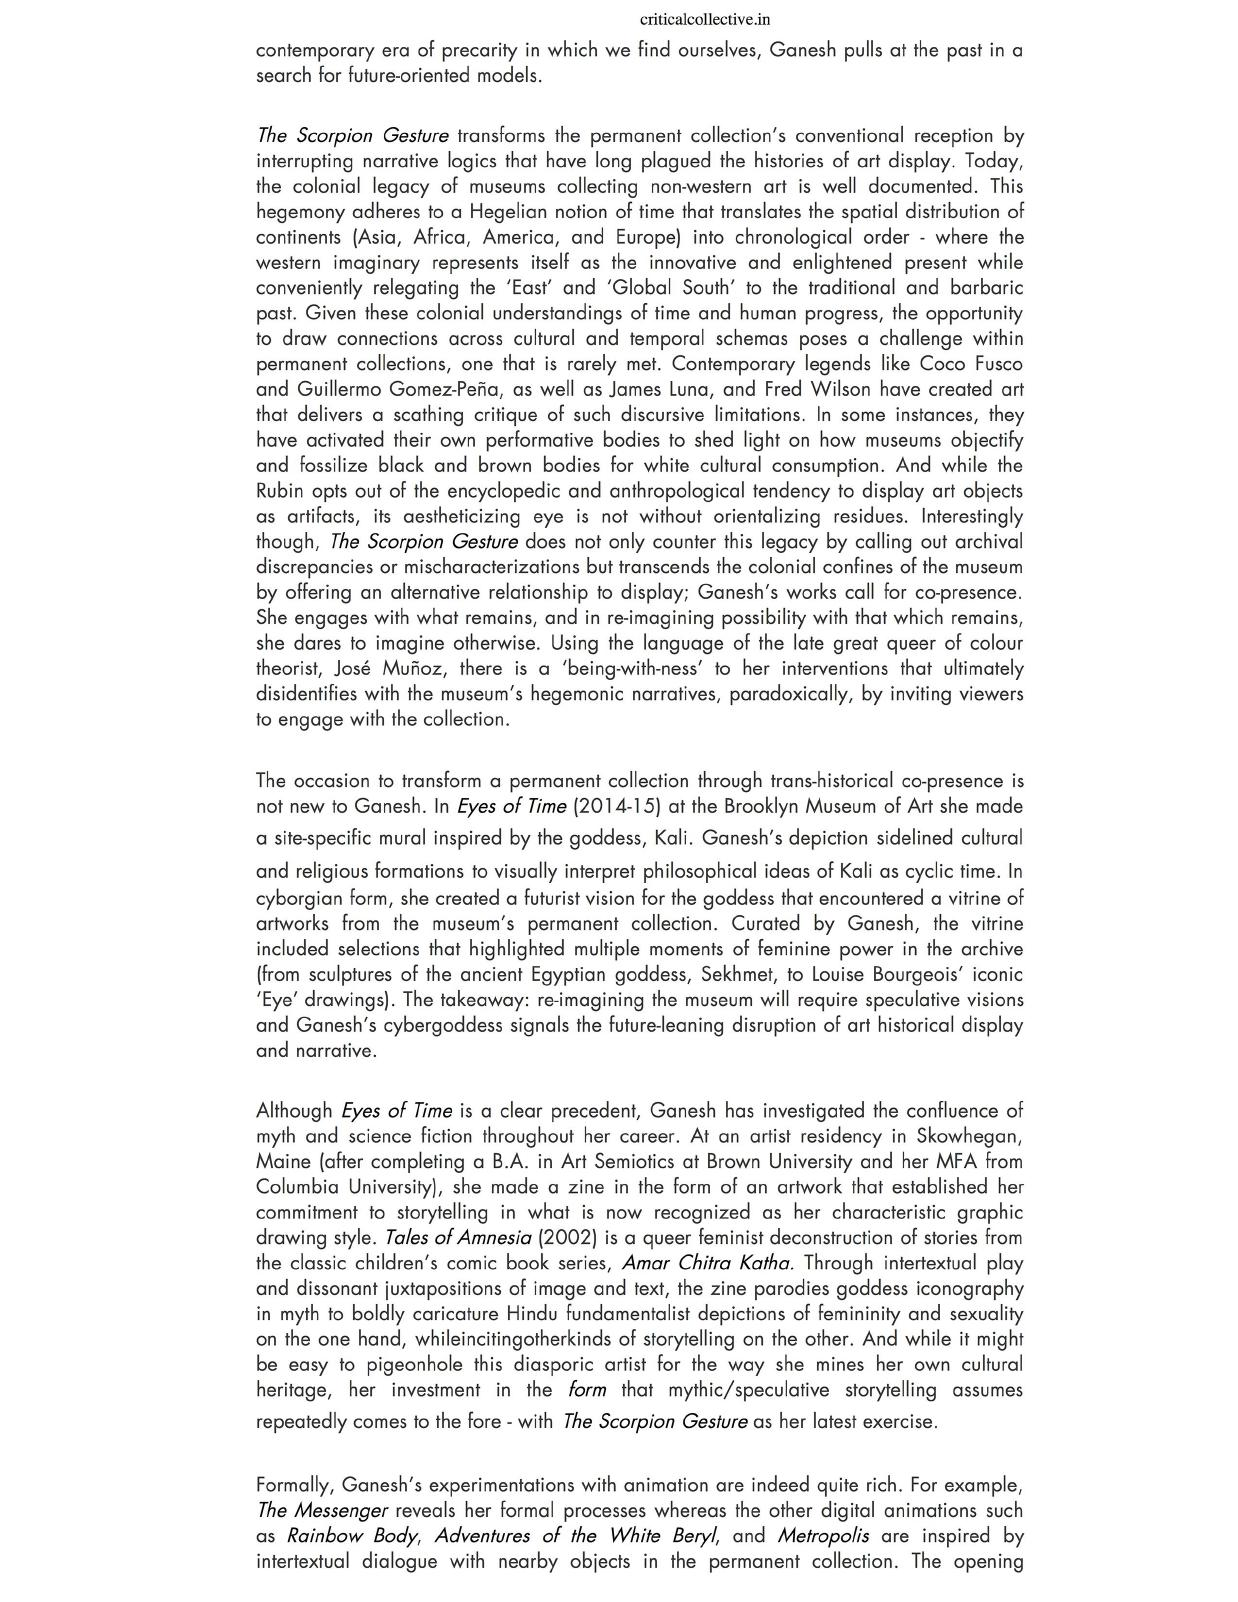 Natasha Bissonauth critical collective scholarly review-min_Page_2.jpg